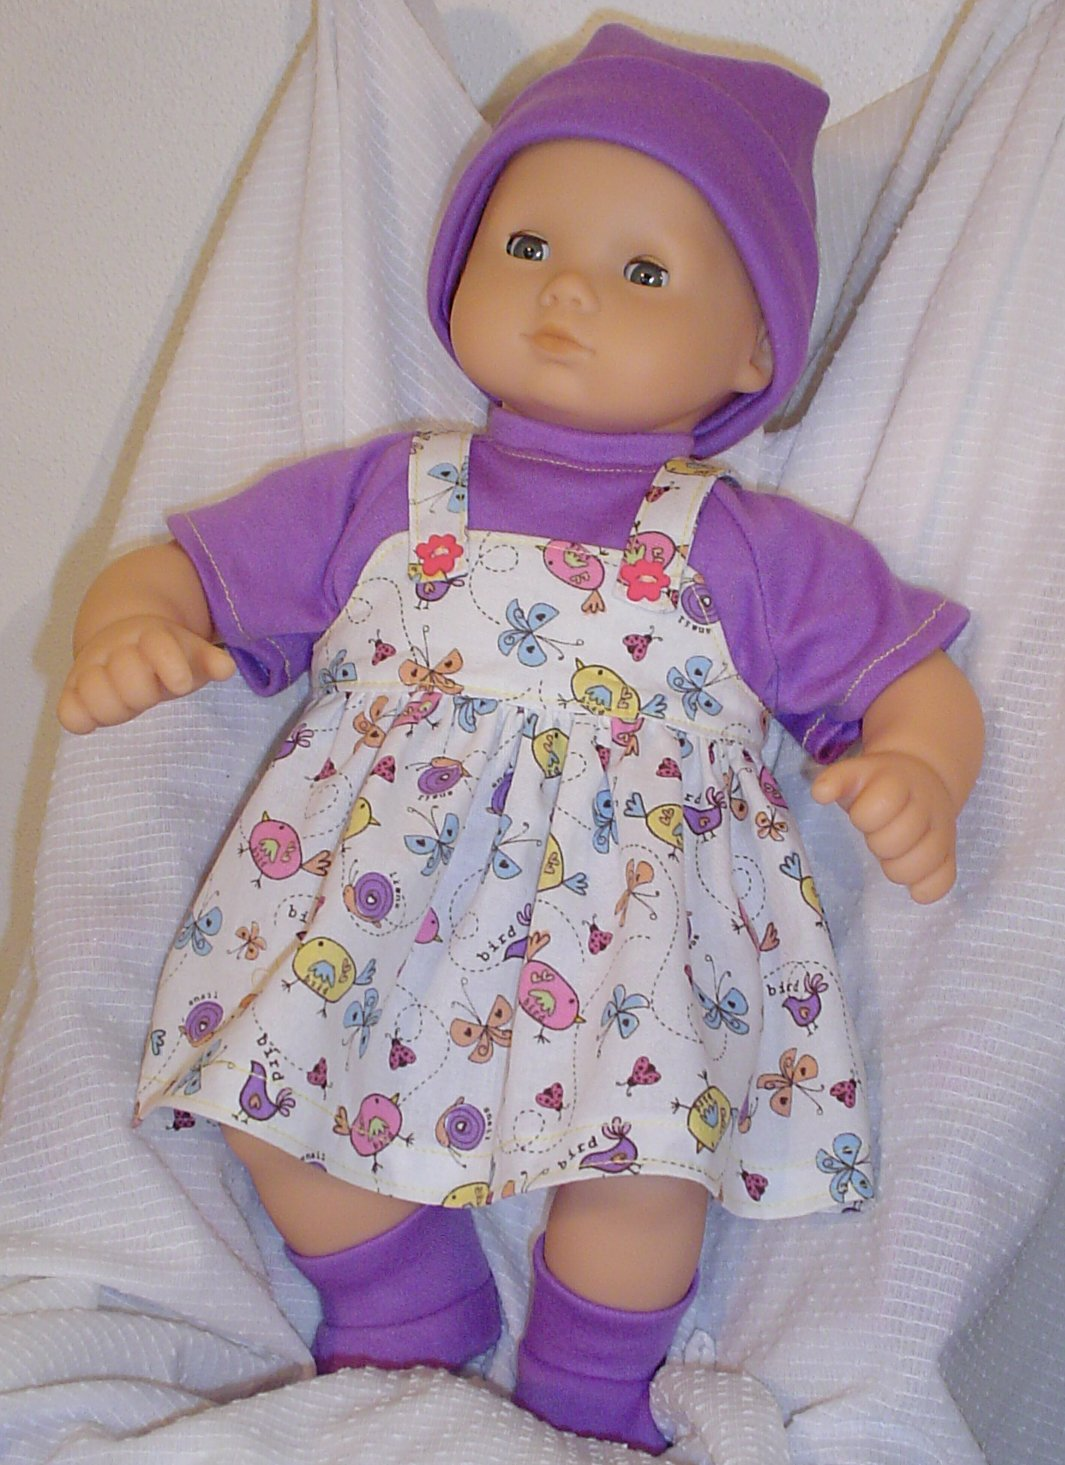 Lanetta's Creations: Fourth Day of Christmas - Doll Clothes